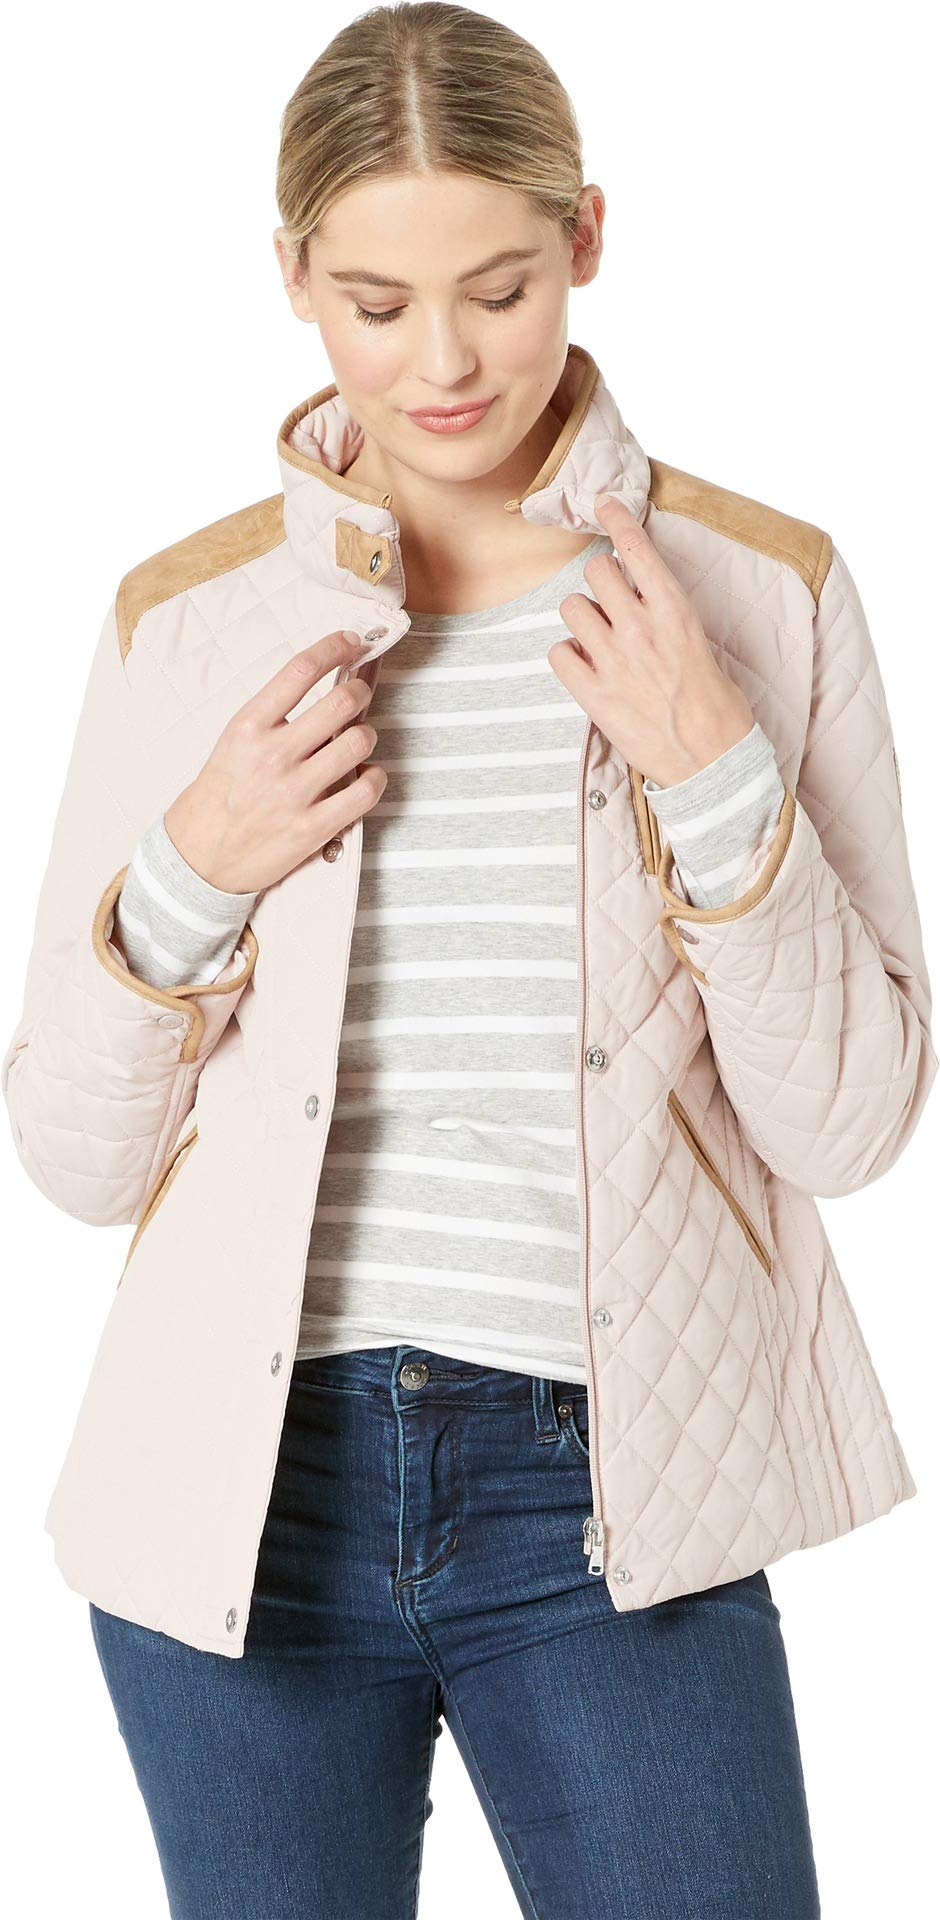 LAUREN RALPH LAUREN Women's Quilted Barn Jacket with Faux Leather Trim English Blush Small